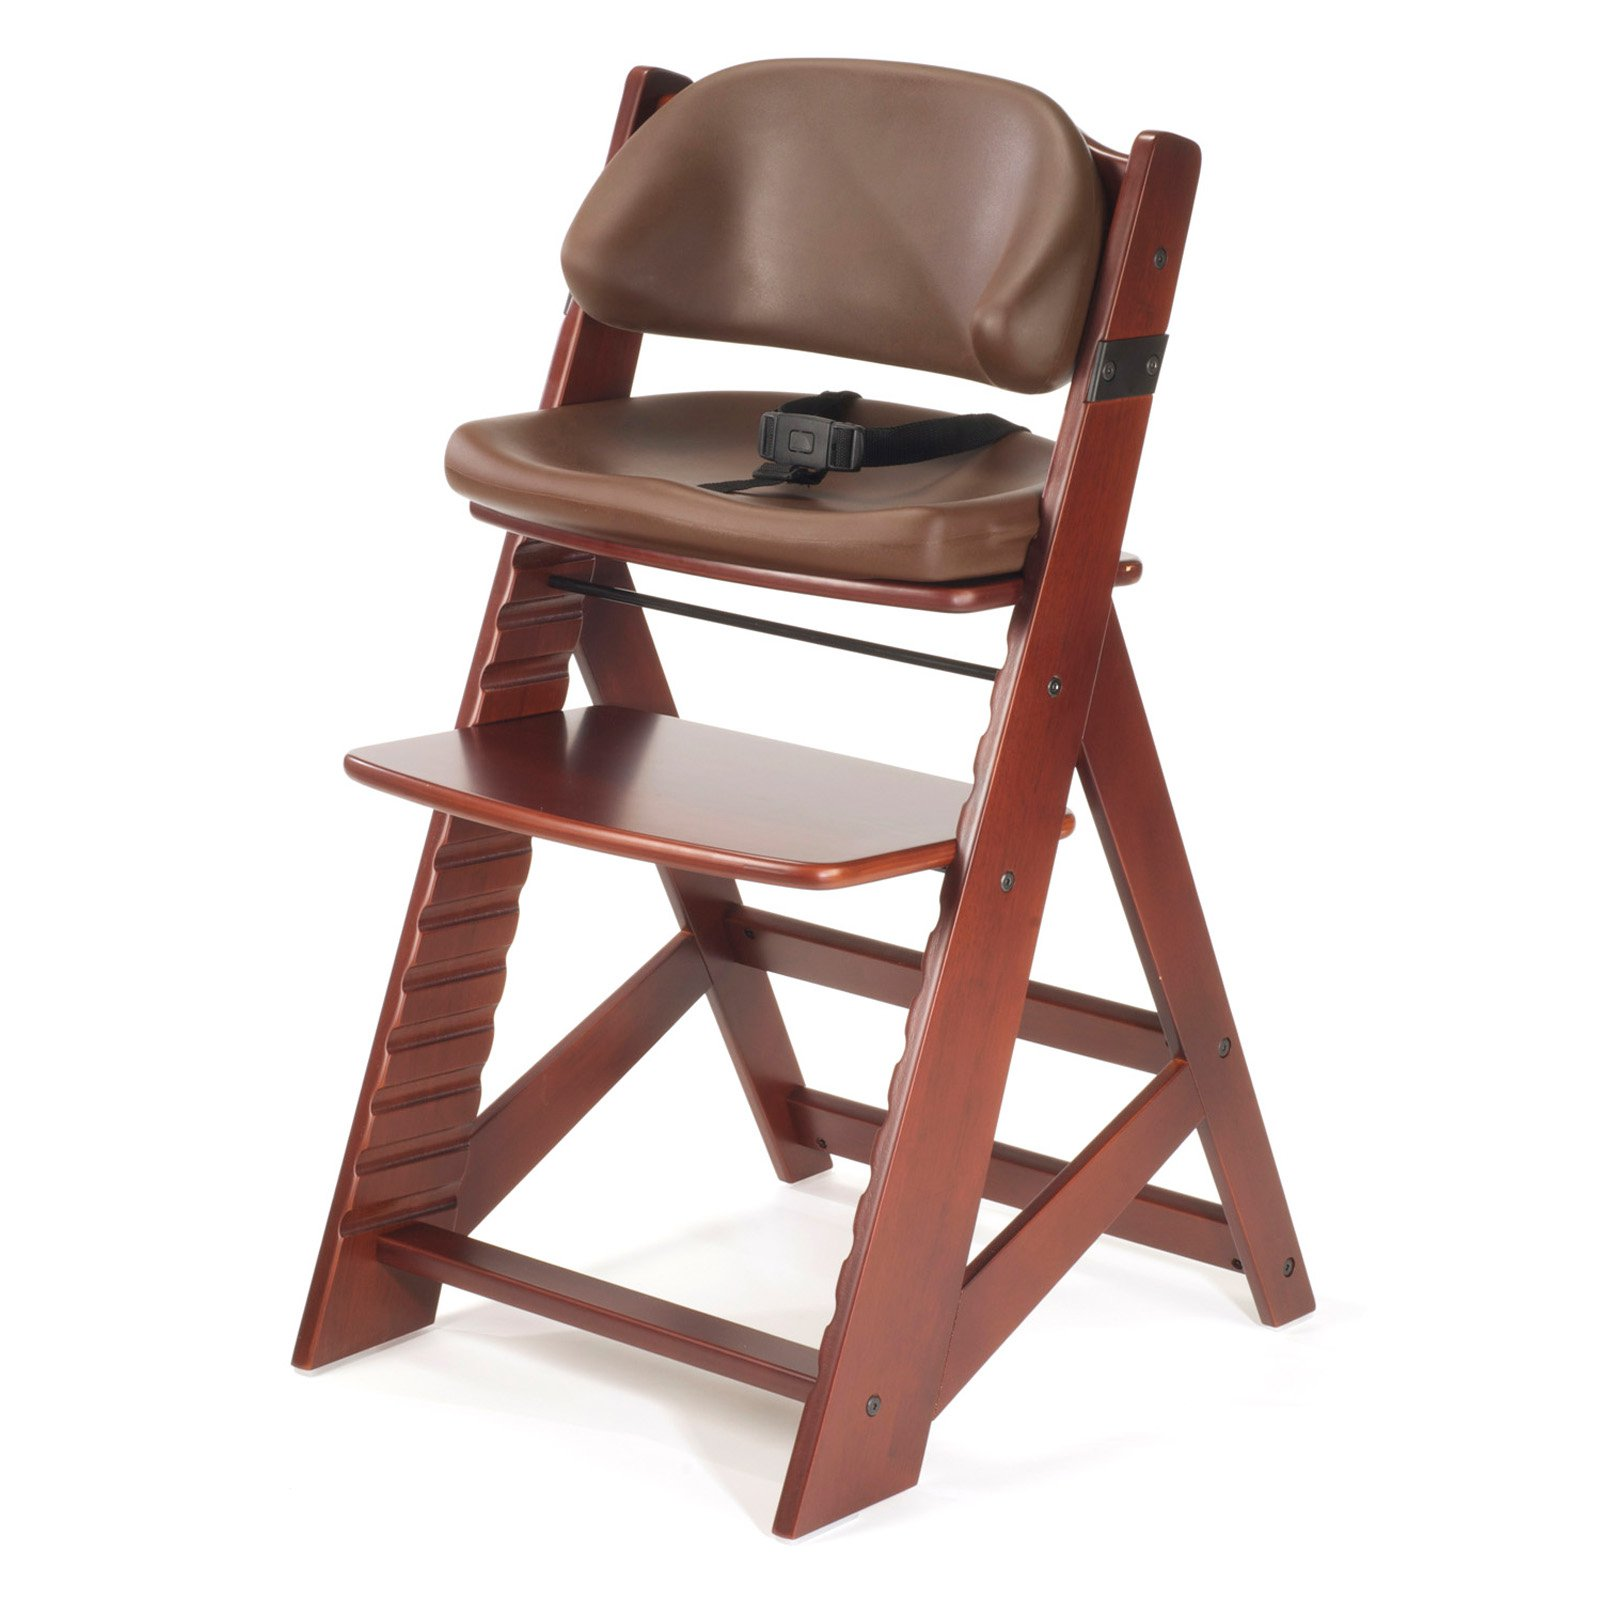 Keekaroo Height Right Kids Chair Mahogany with Chocolate Comfort Cushions